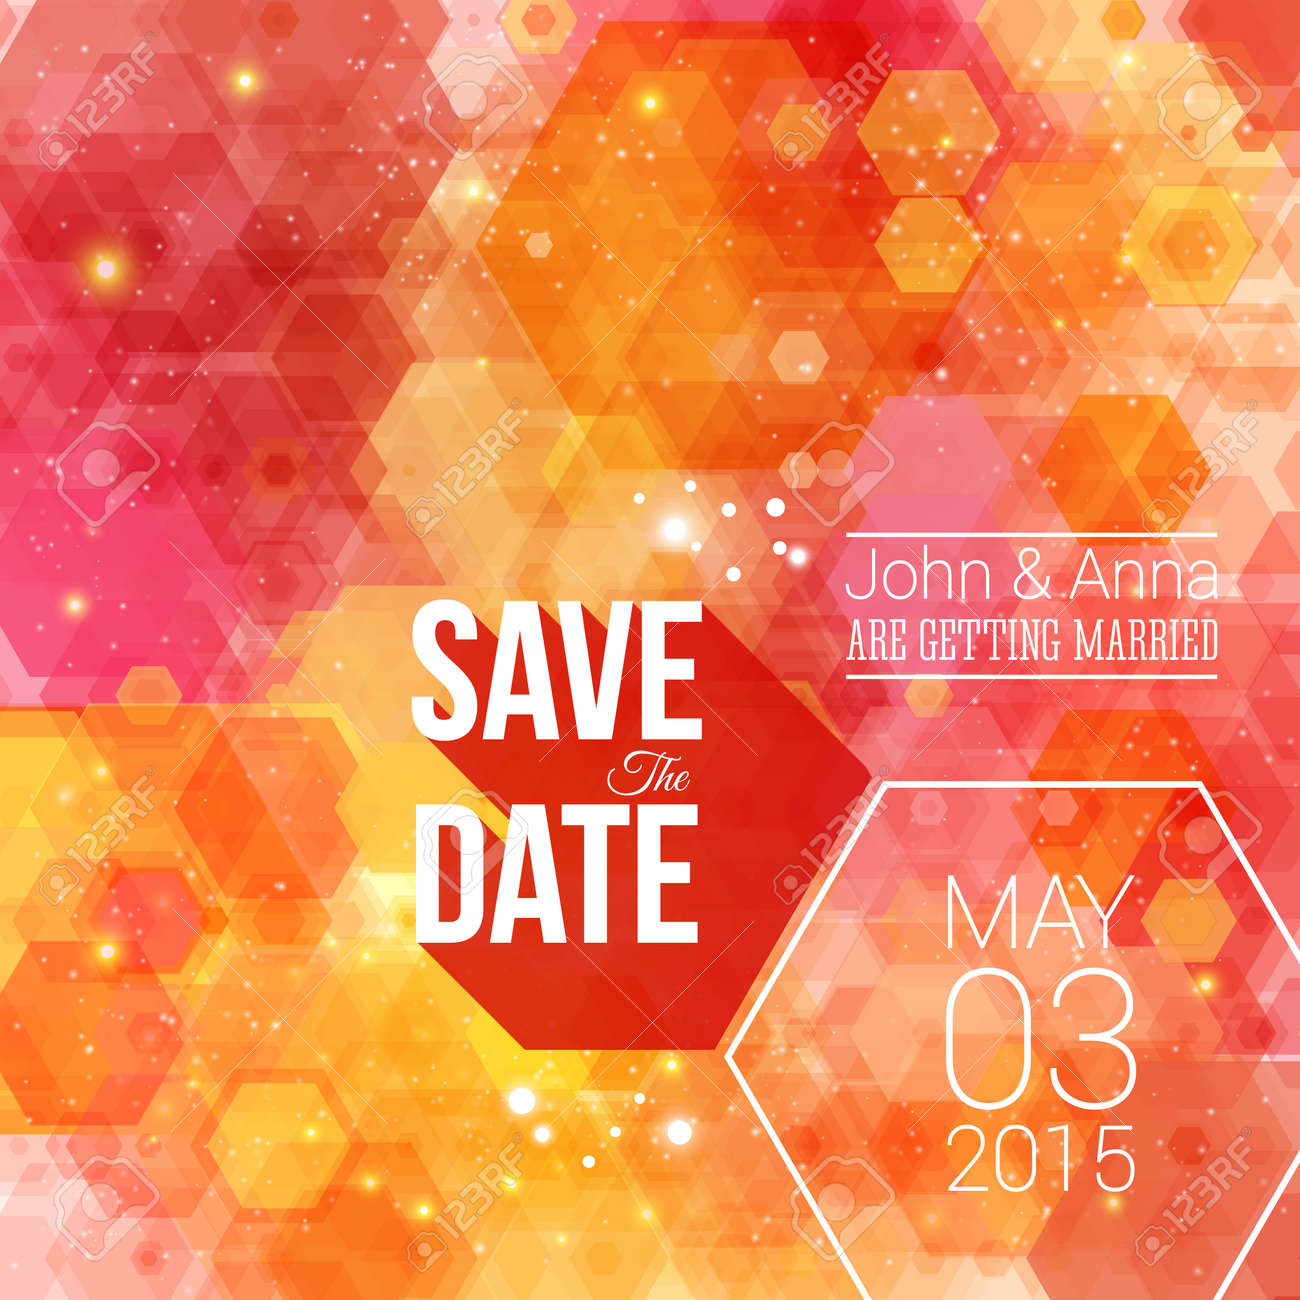 Save The Date For Personal Holiday. Wedding Invitation. Royalty Free ...